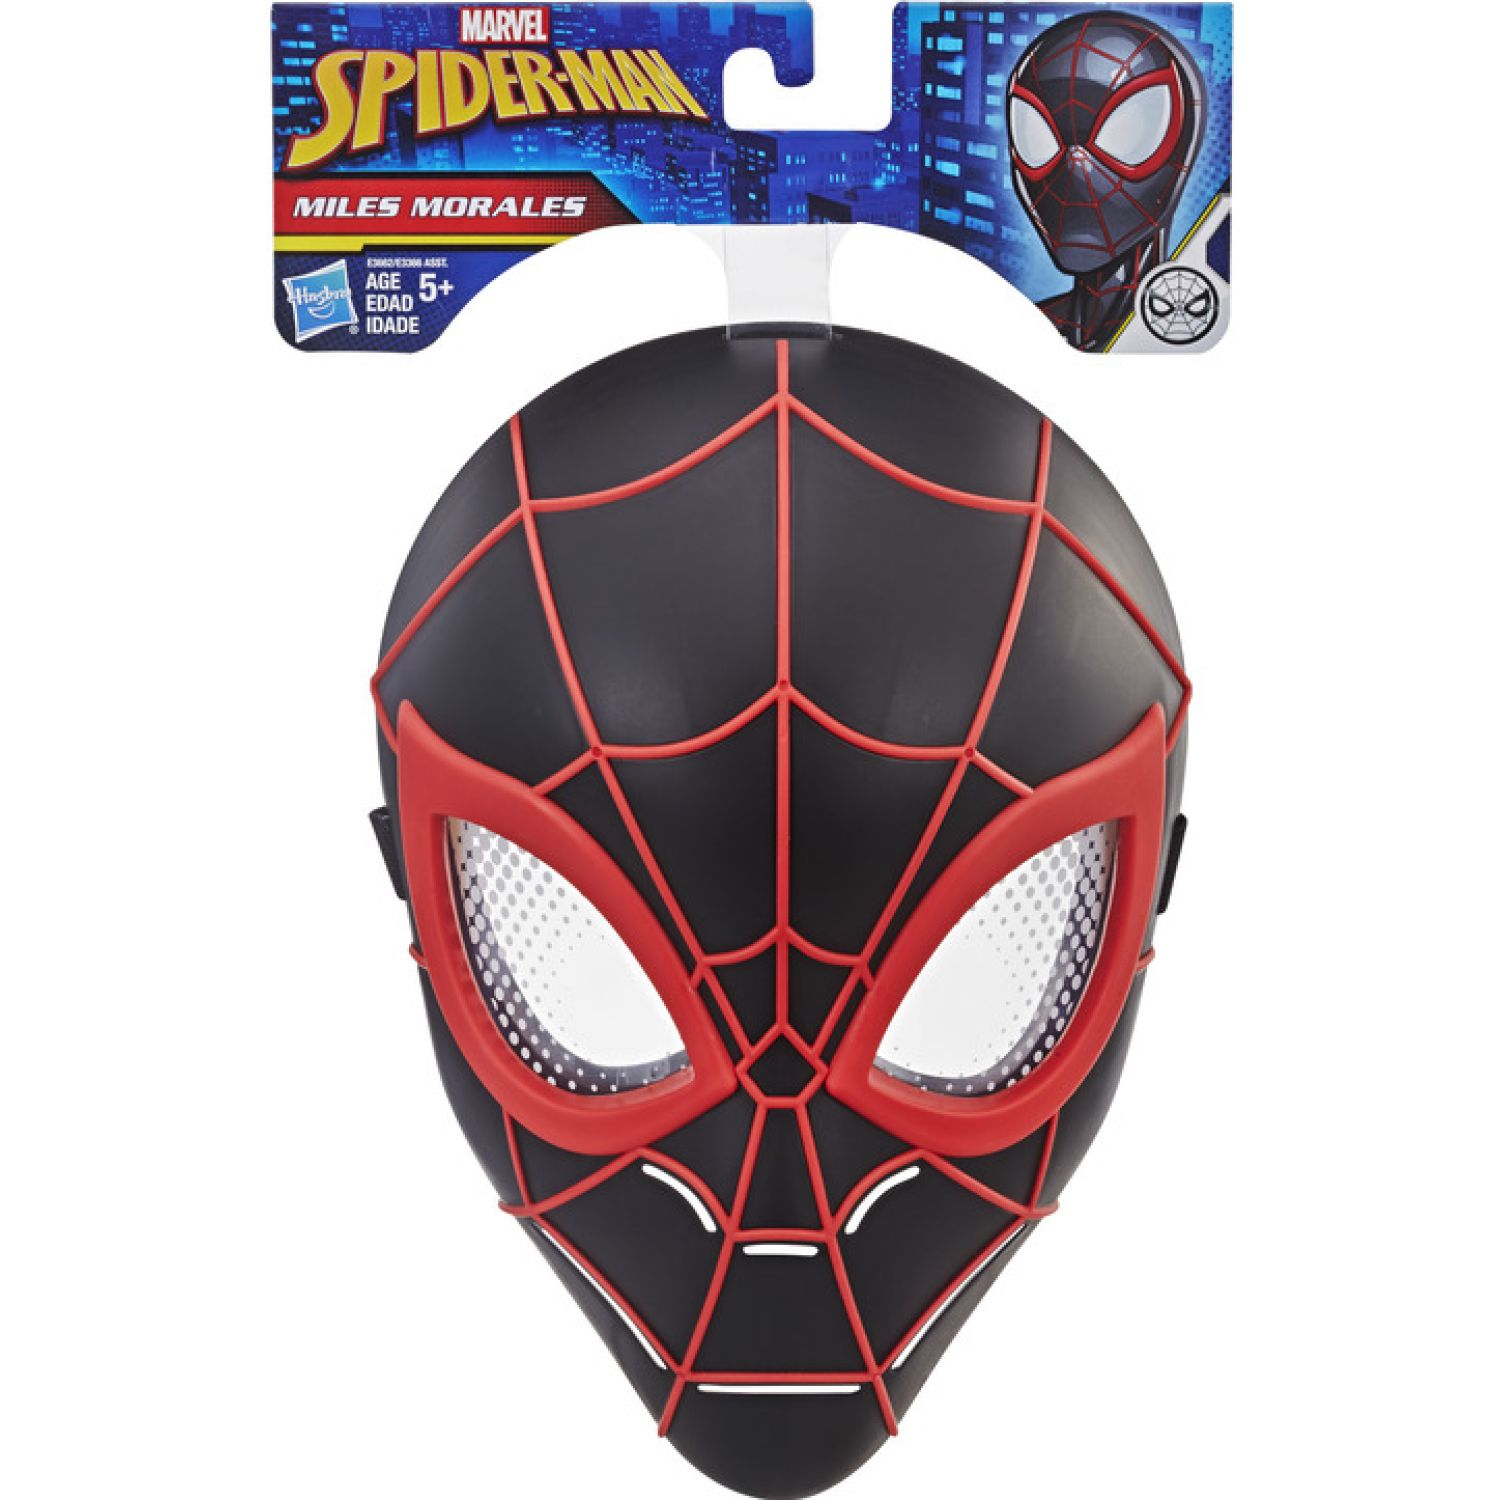 SPIDER-MAN SPD HERO MASK MILES Varios Antifaces